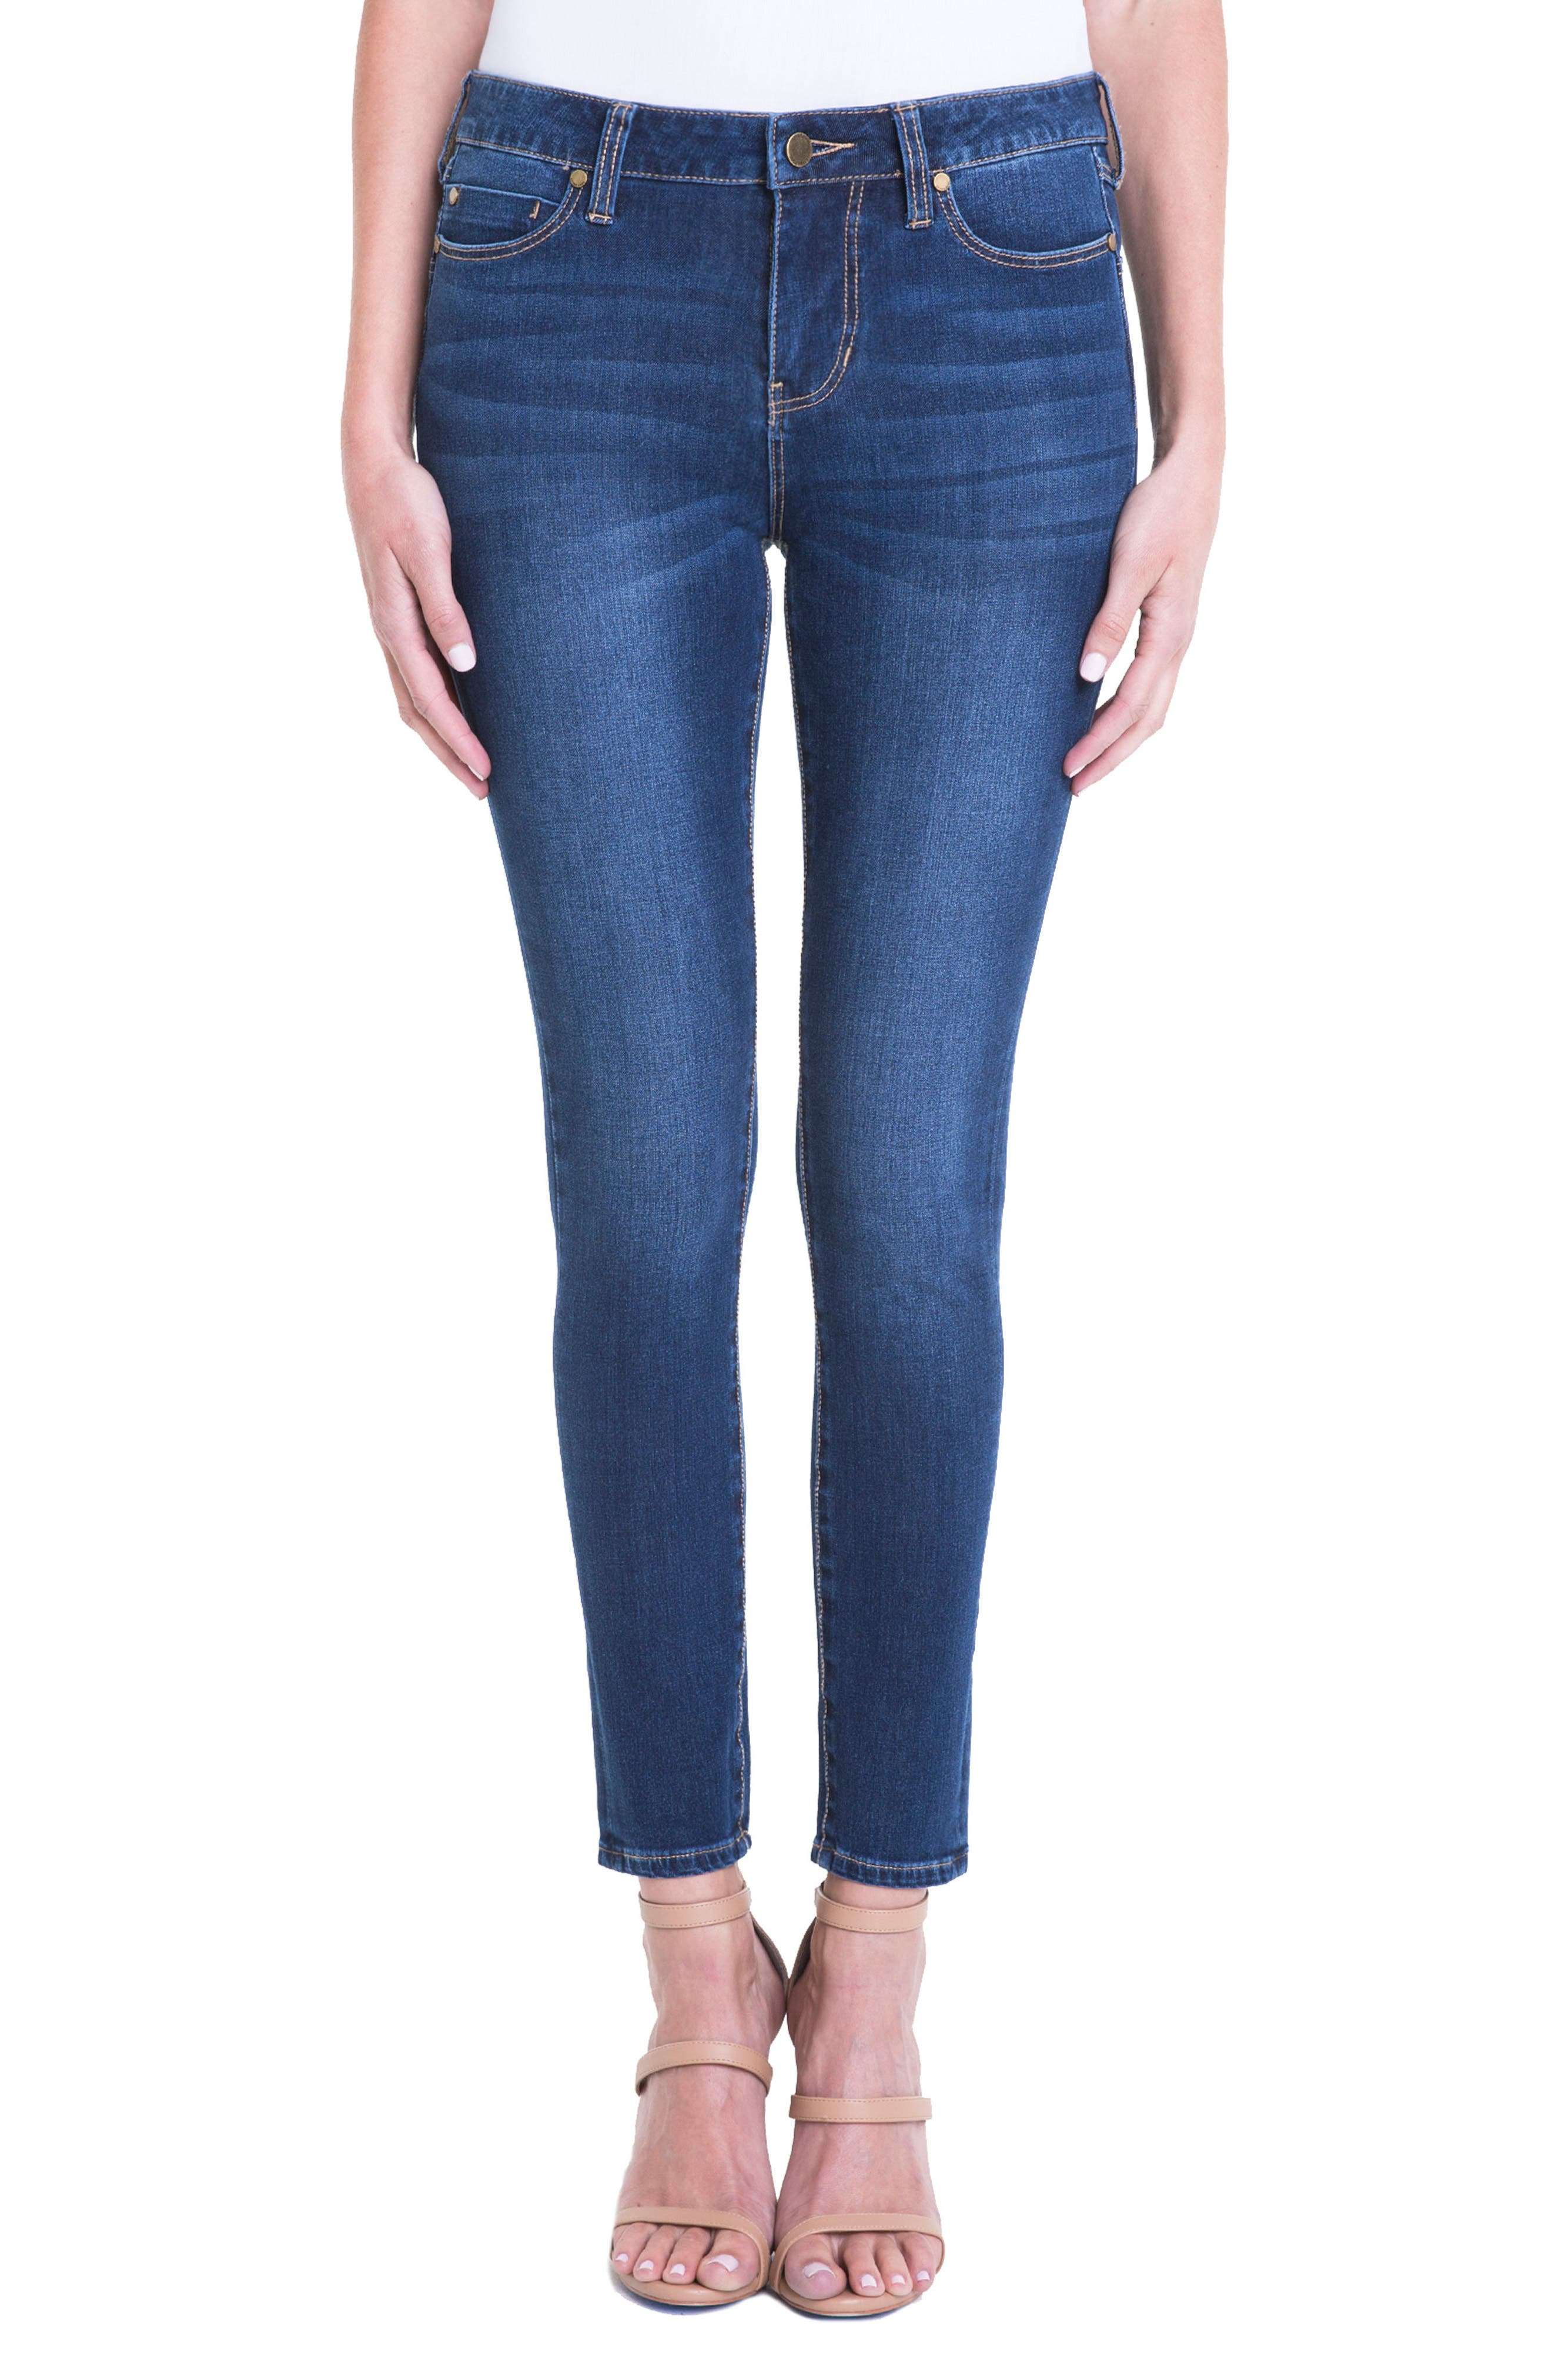 Liverpool Jeans Company Piper Hugger Lift Sculpt Ankle Skinny Jeans (Regular & Petite) (Lynx)